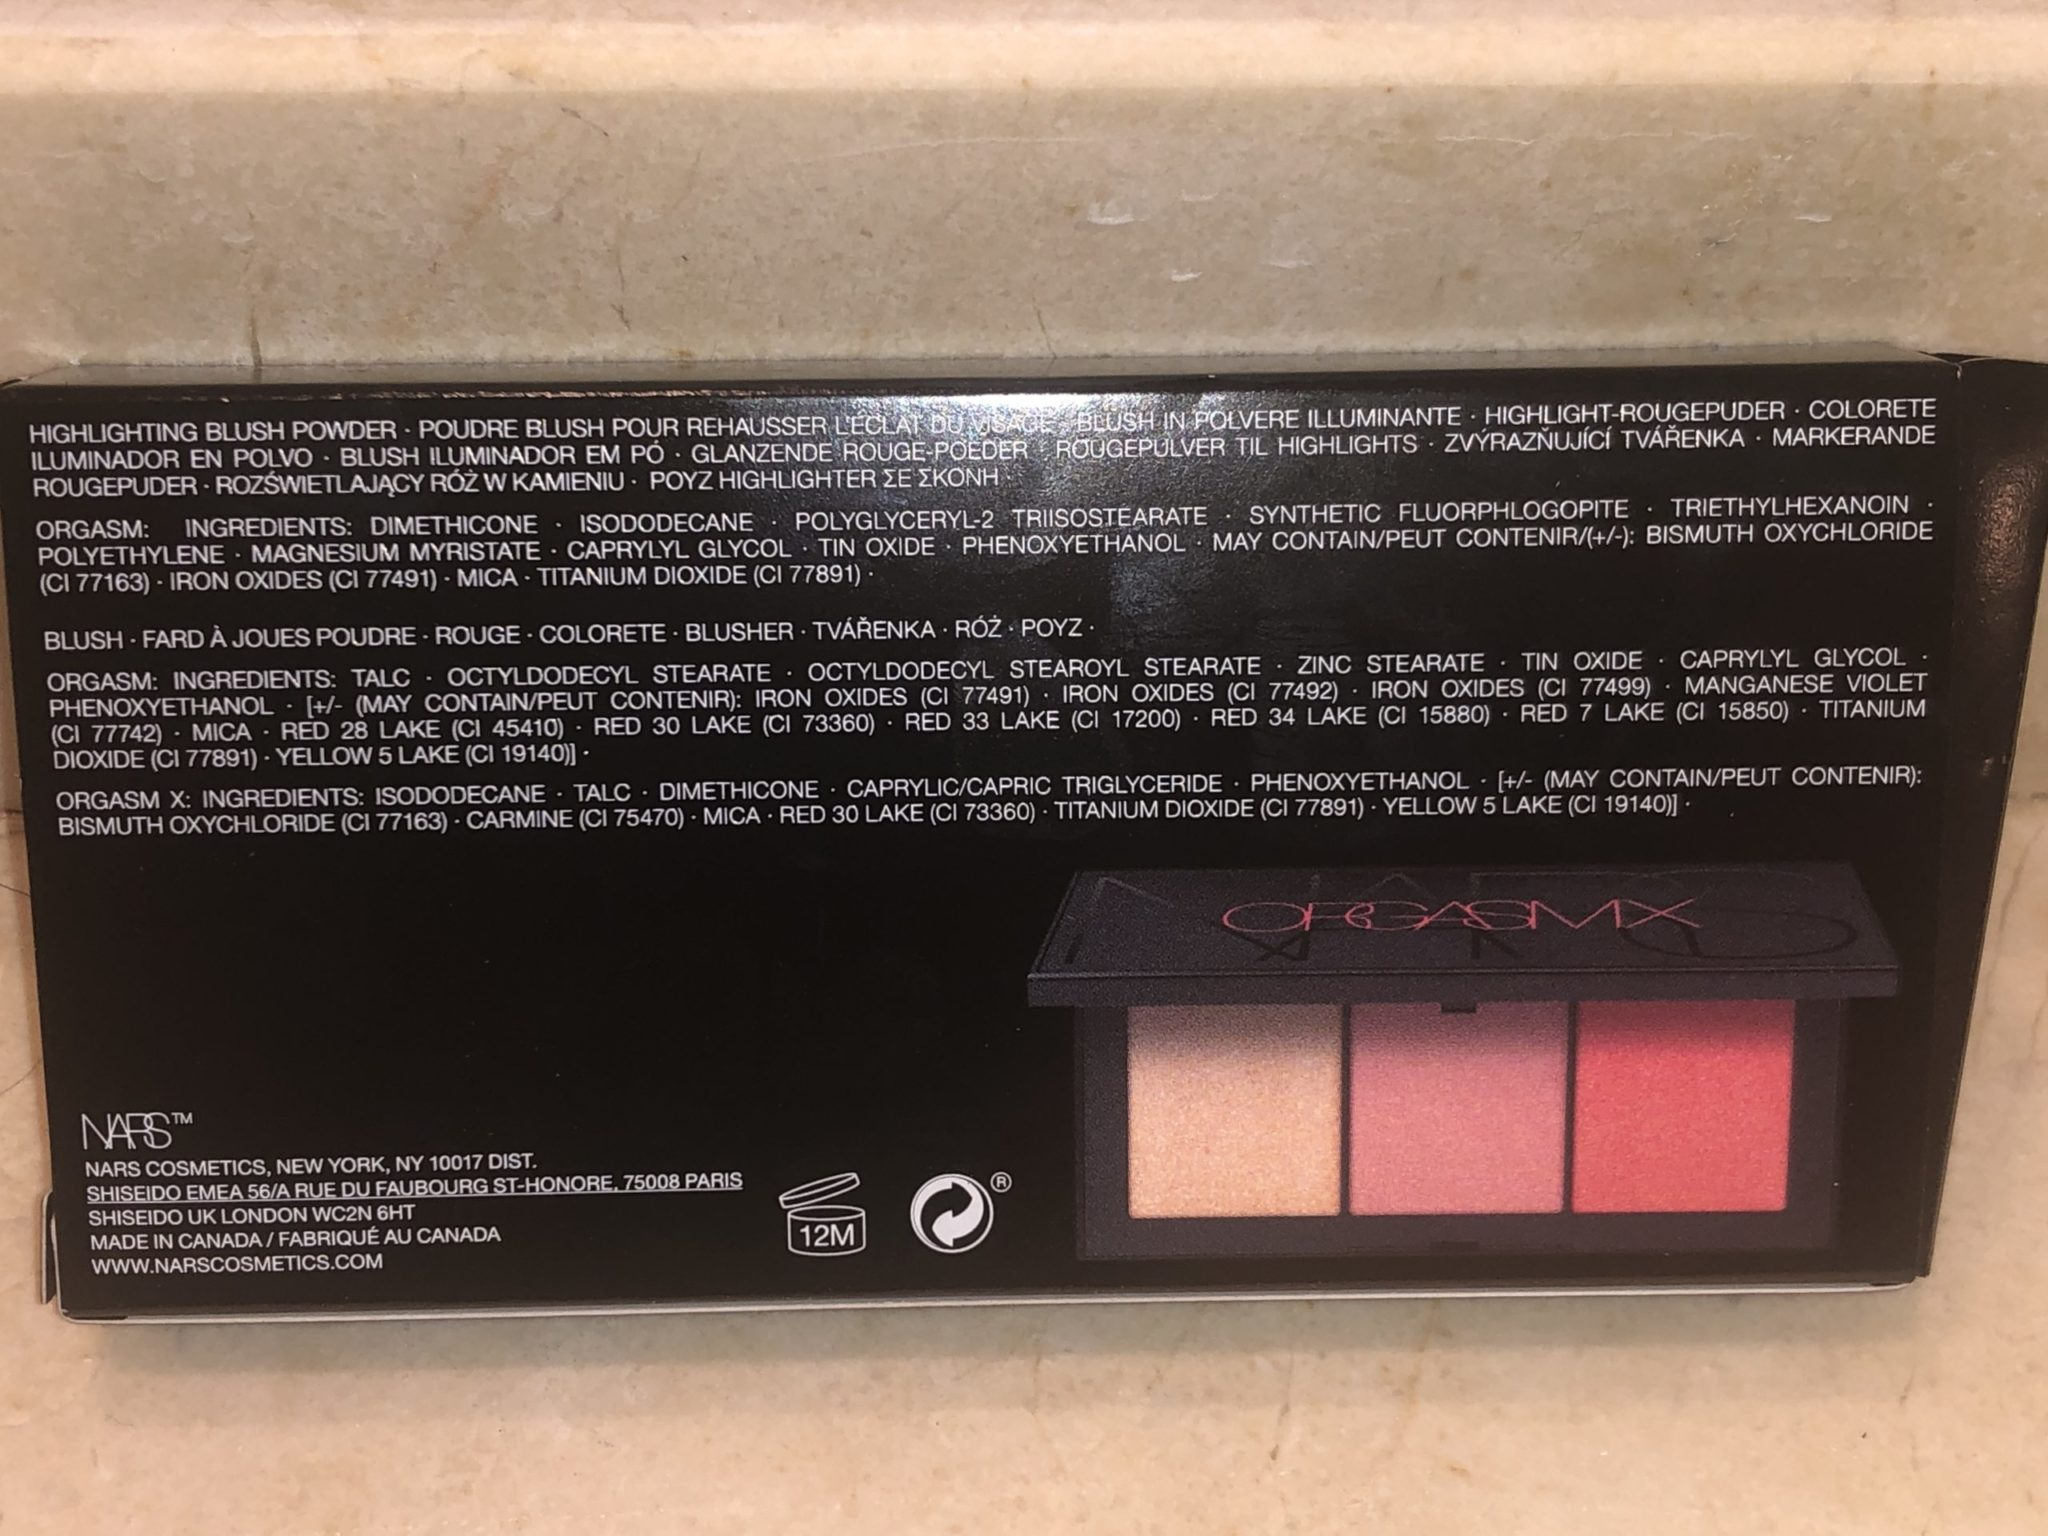 NARS ORGASM X CHEEK PALETTE INGREDIENTS